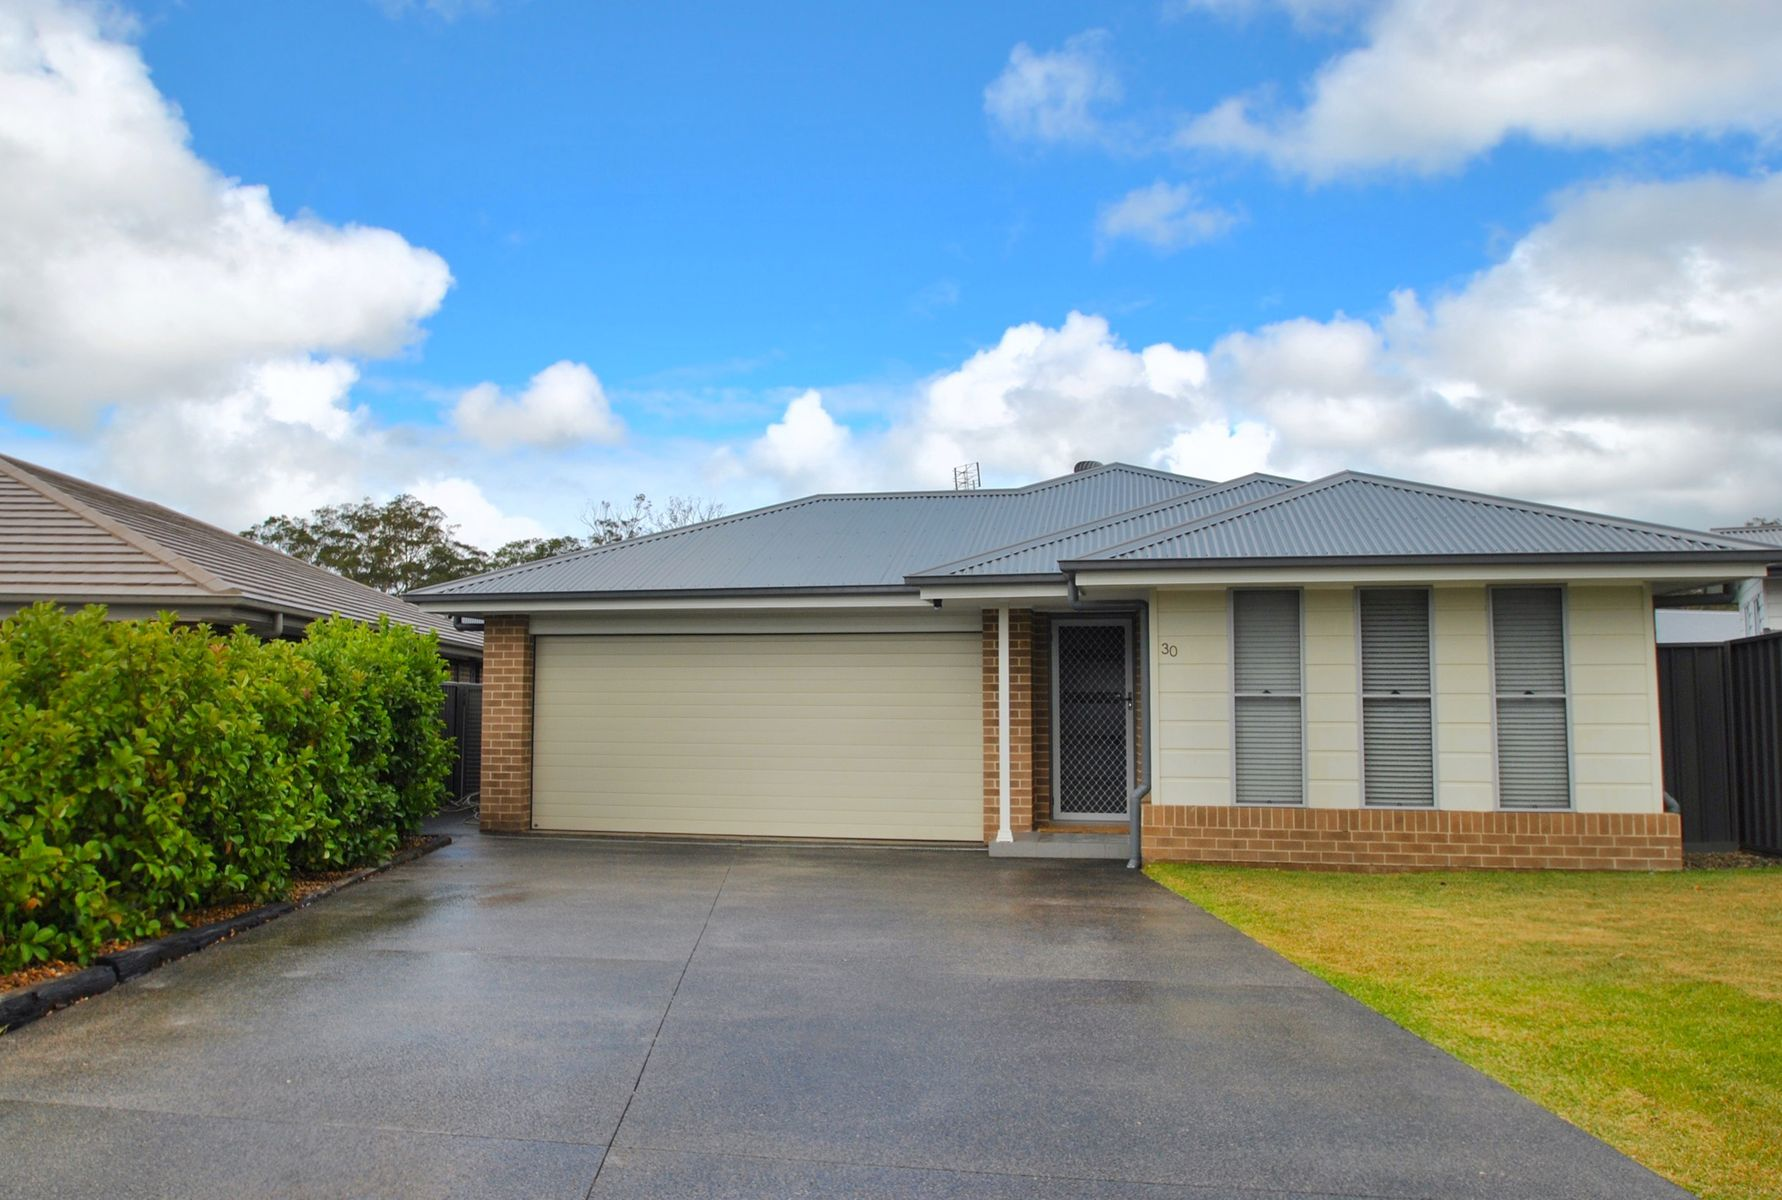 30 Fantail Street, South Nowra, NSW 2541